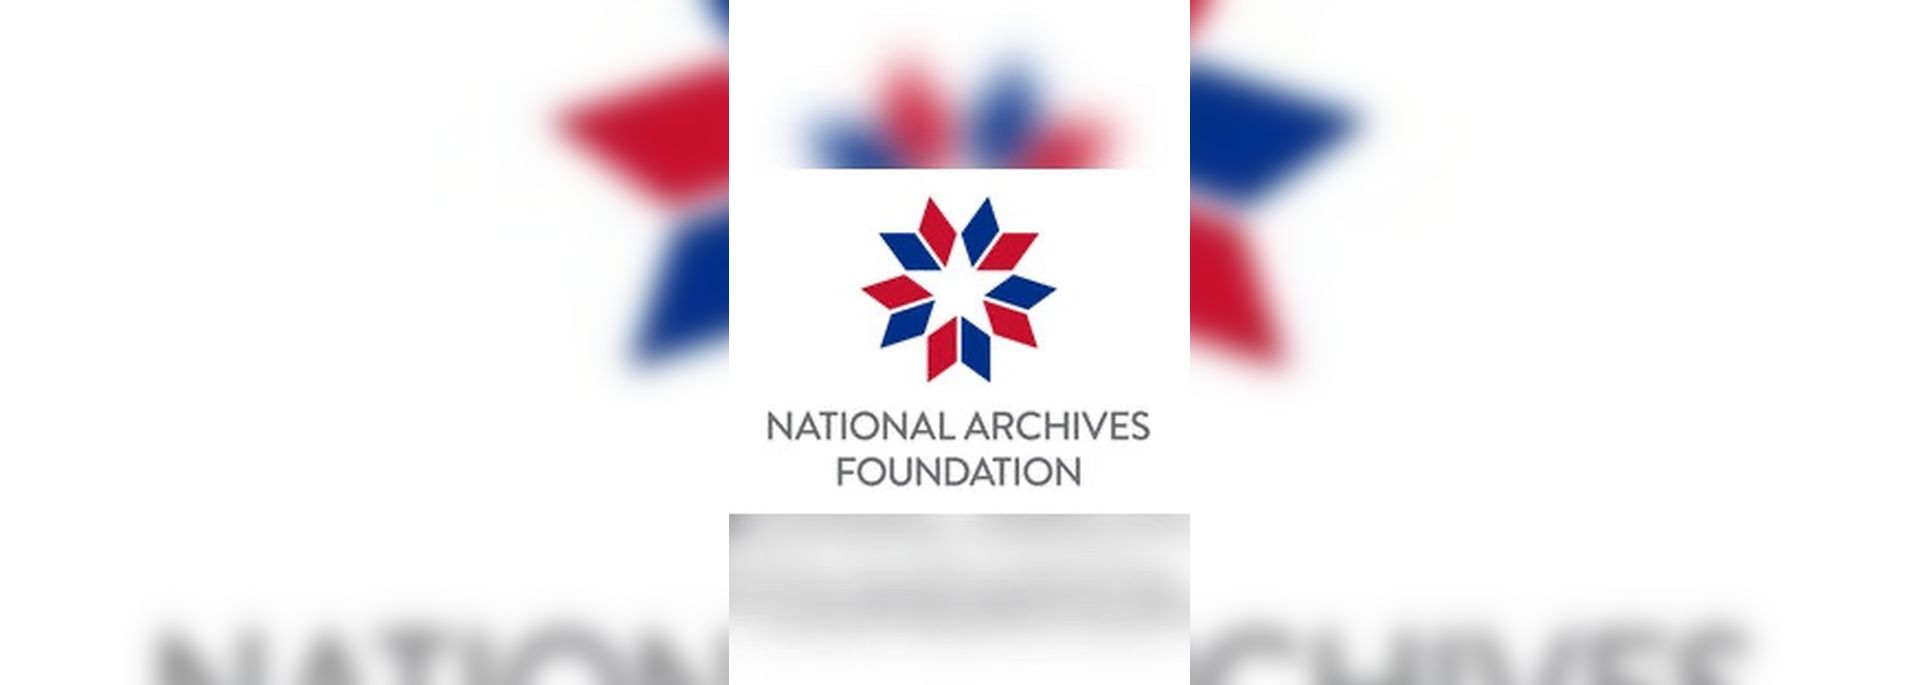 National Archives™ channel